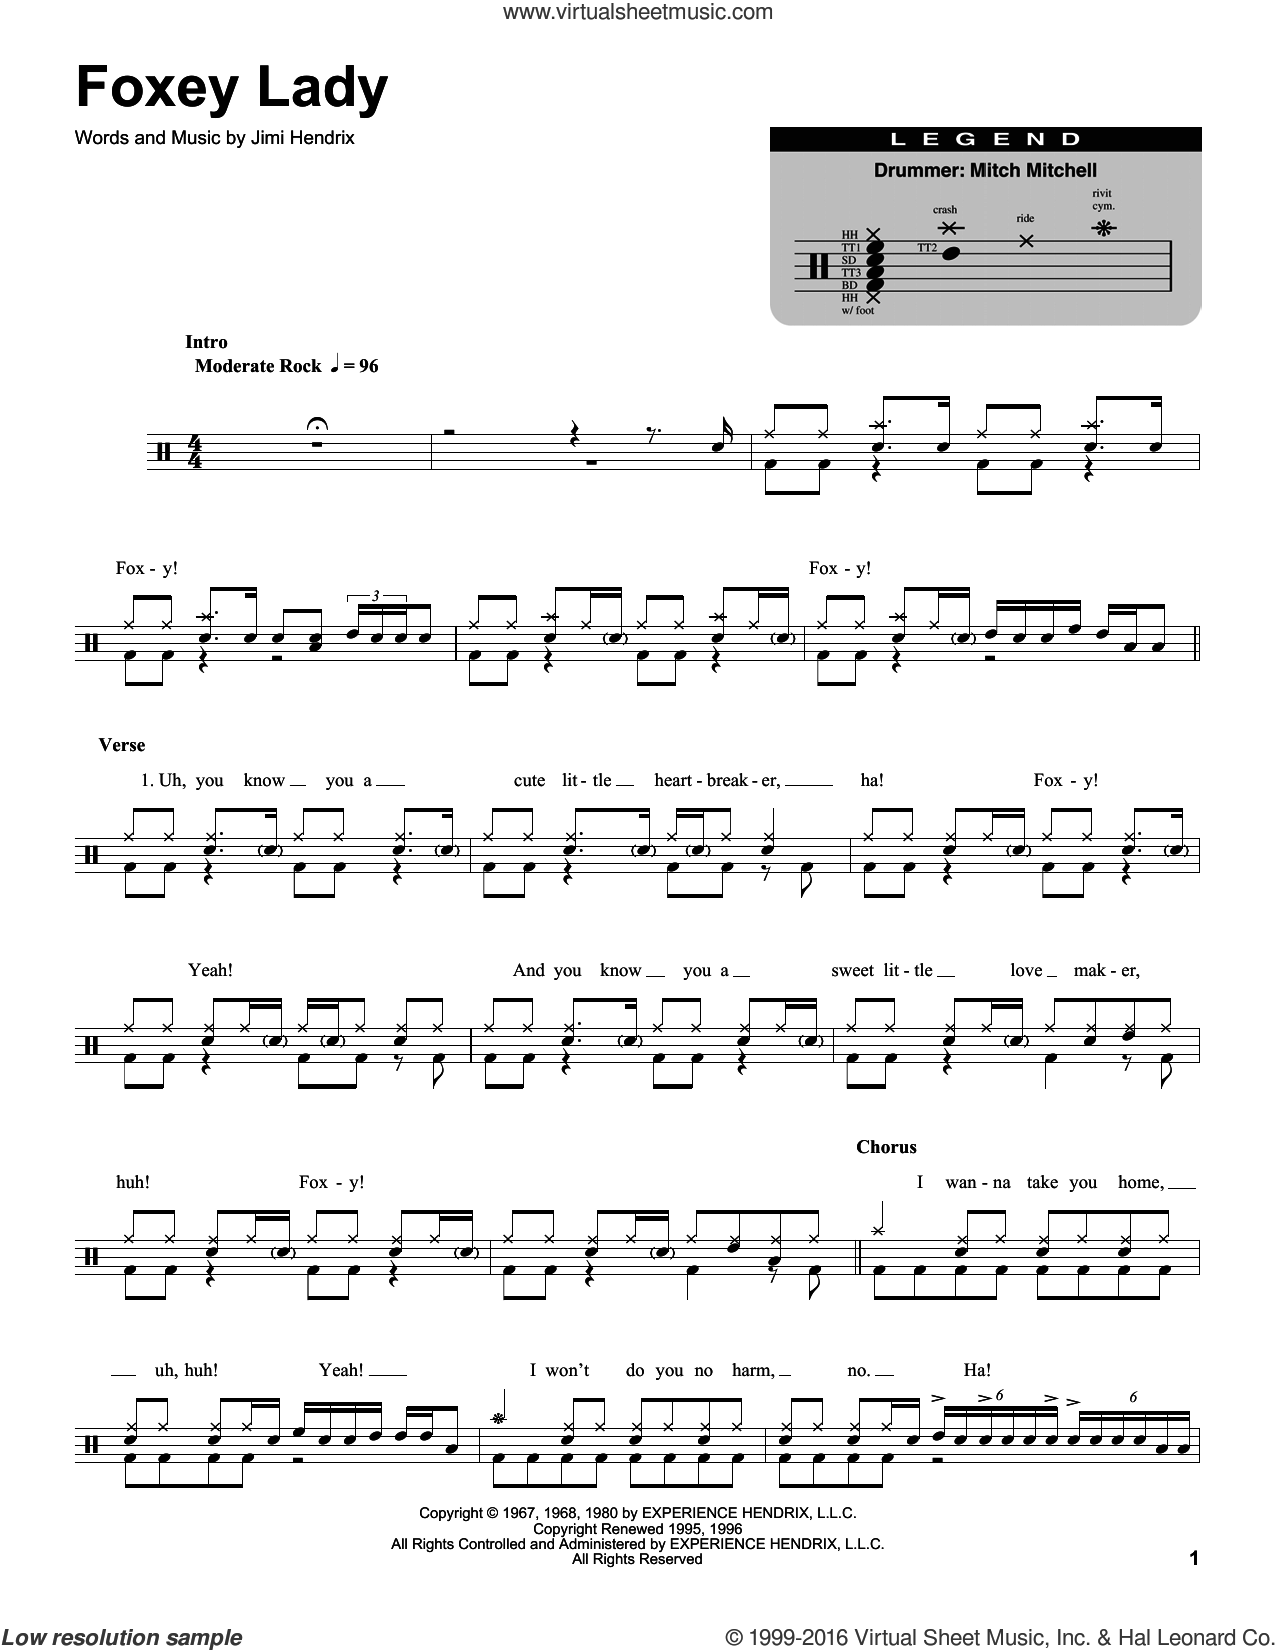 Foxey Lady sheet music for drums by Jimi Hendrix, intermediate skill level